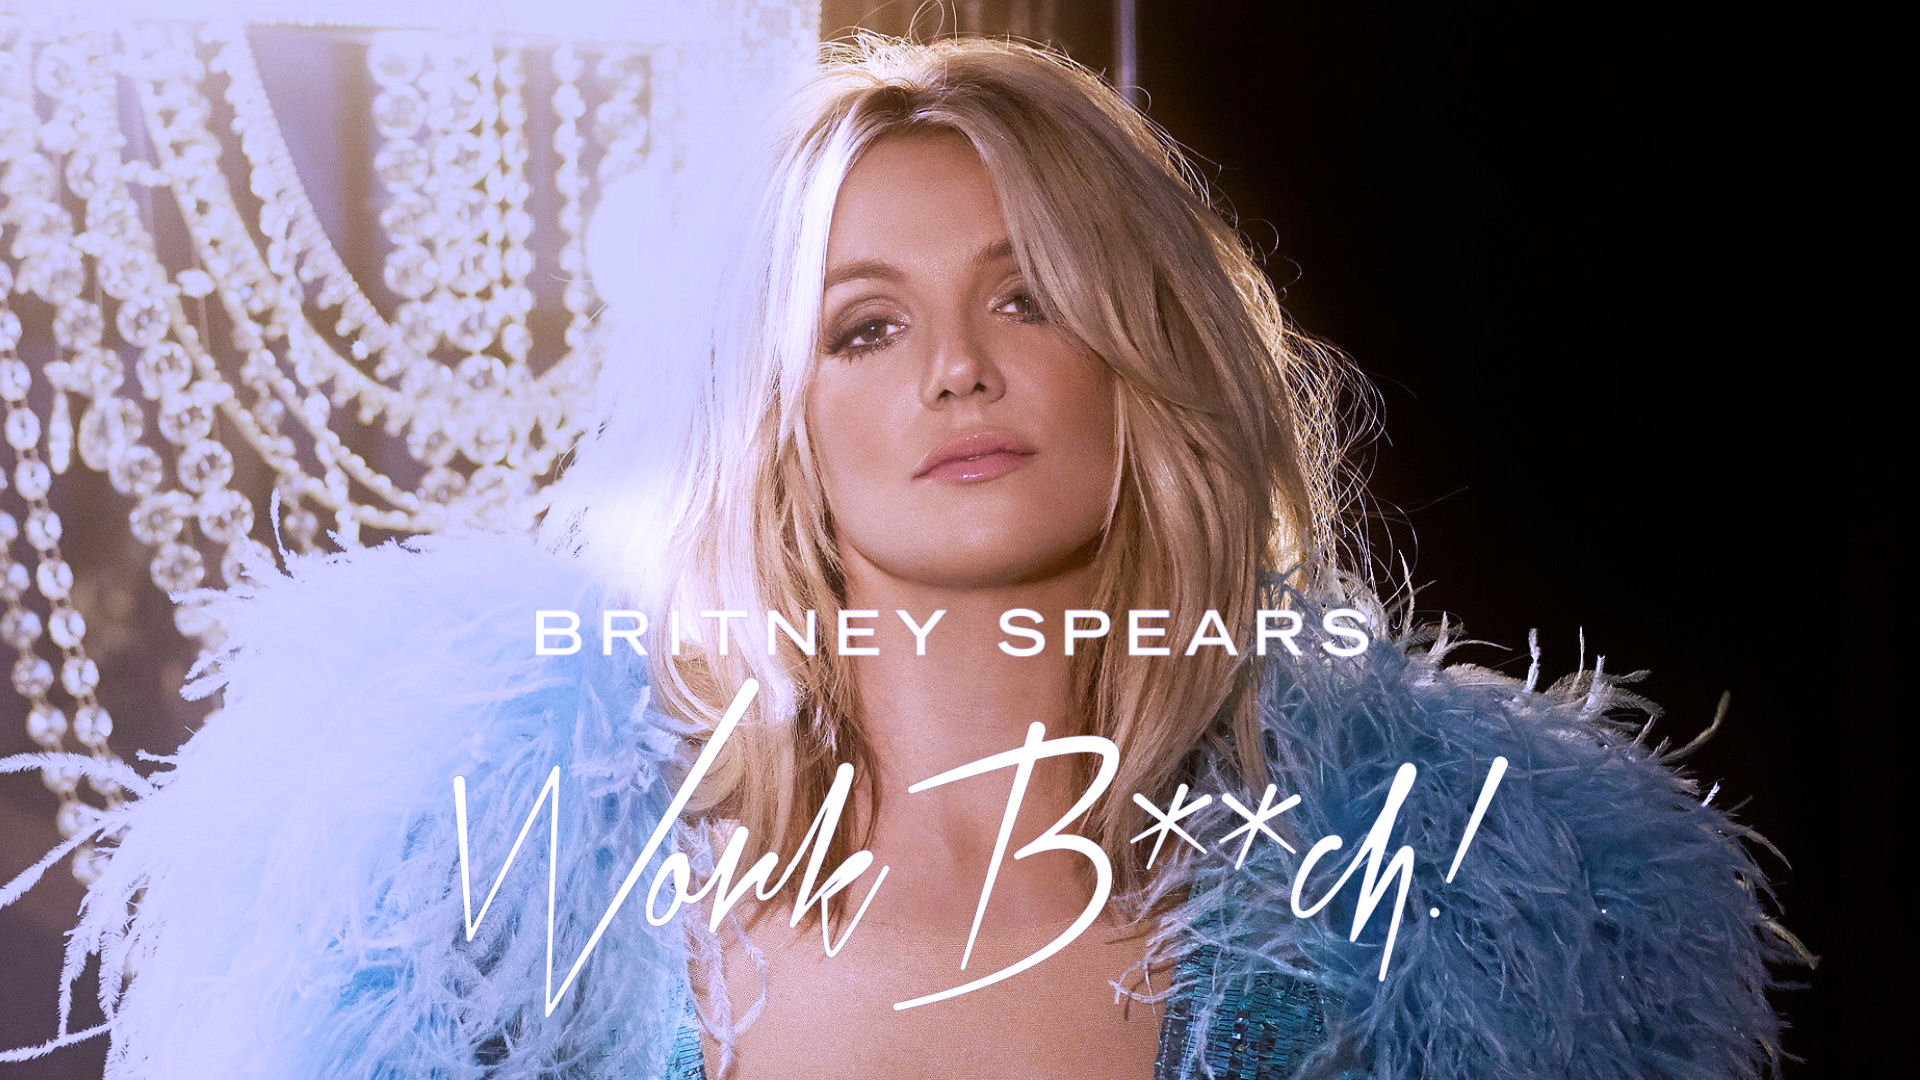 Britney spears special videoclip 8